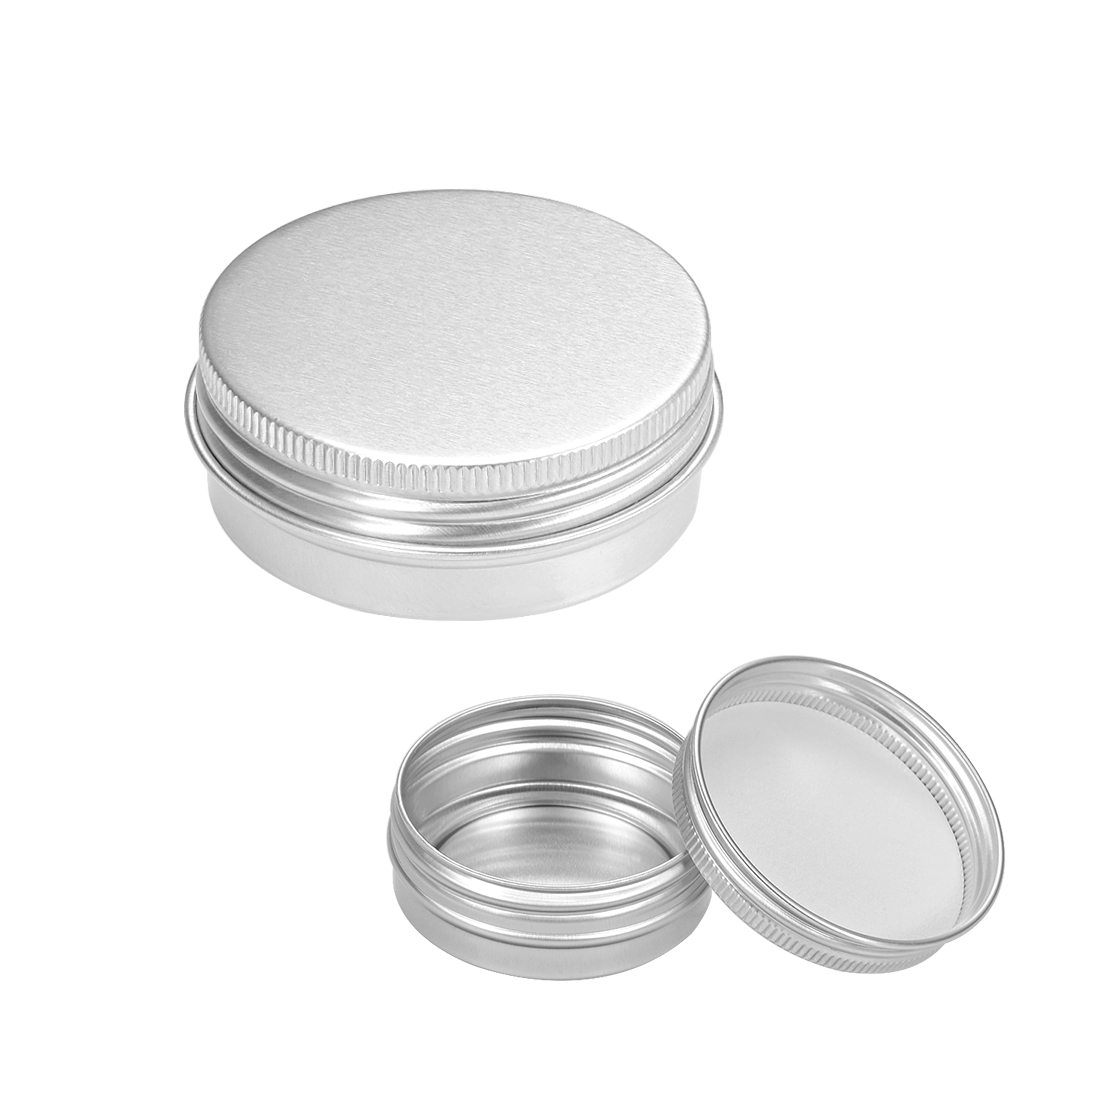 1 oz Round Aluminum Cans Tin Can Screw Top Metal Lid Containers 30ml, 5pcs